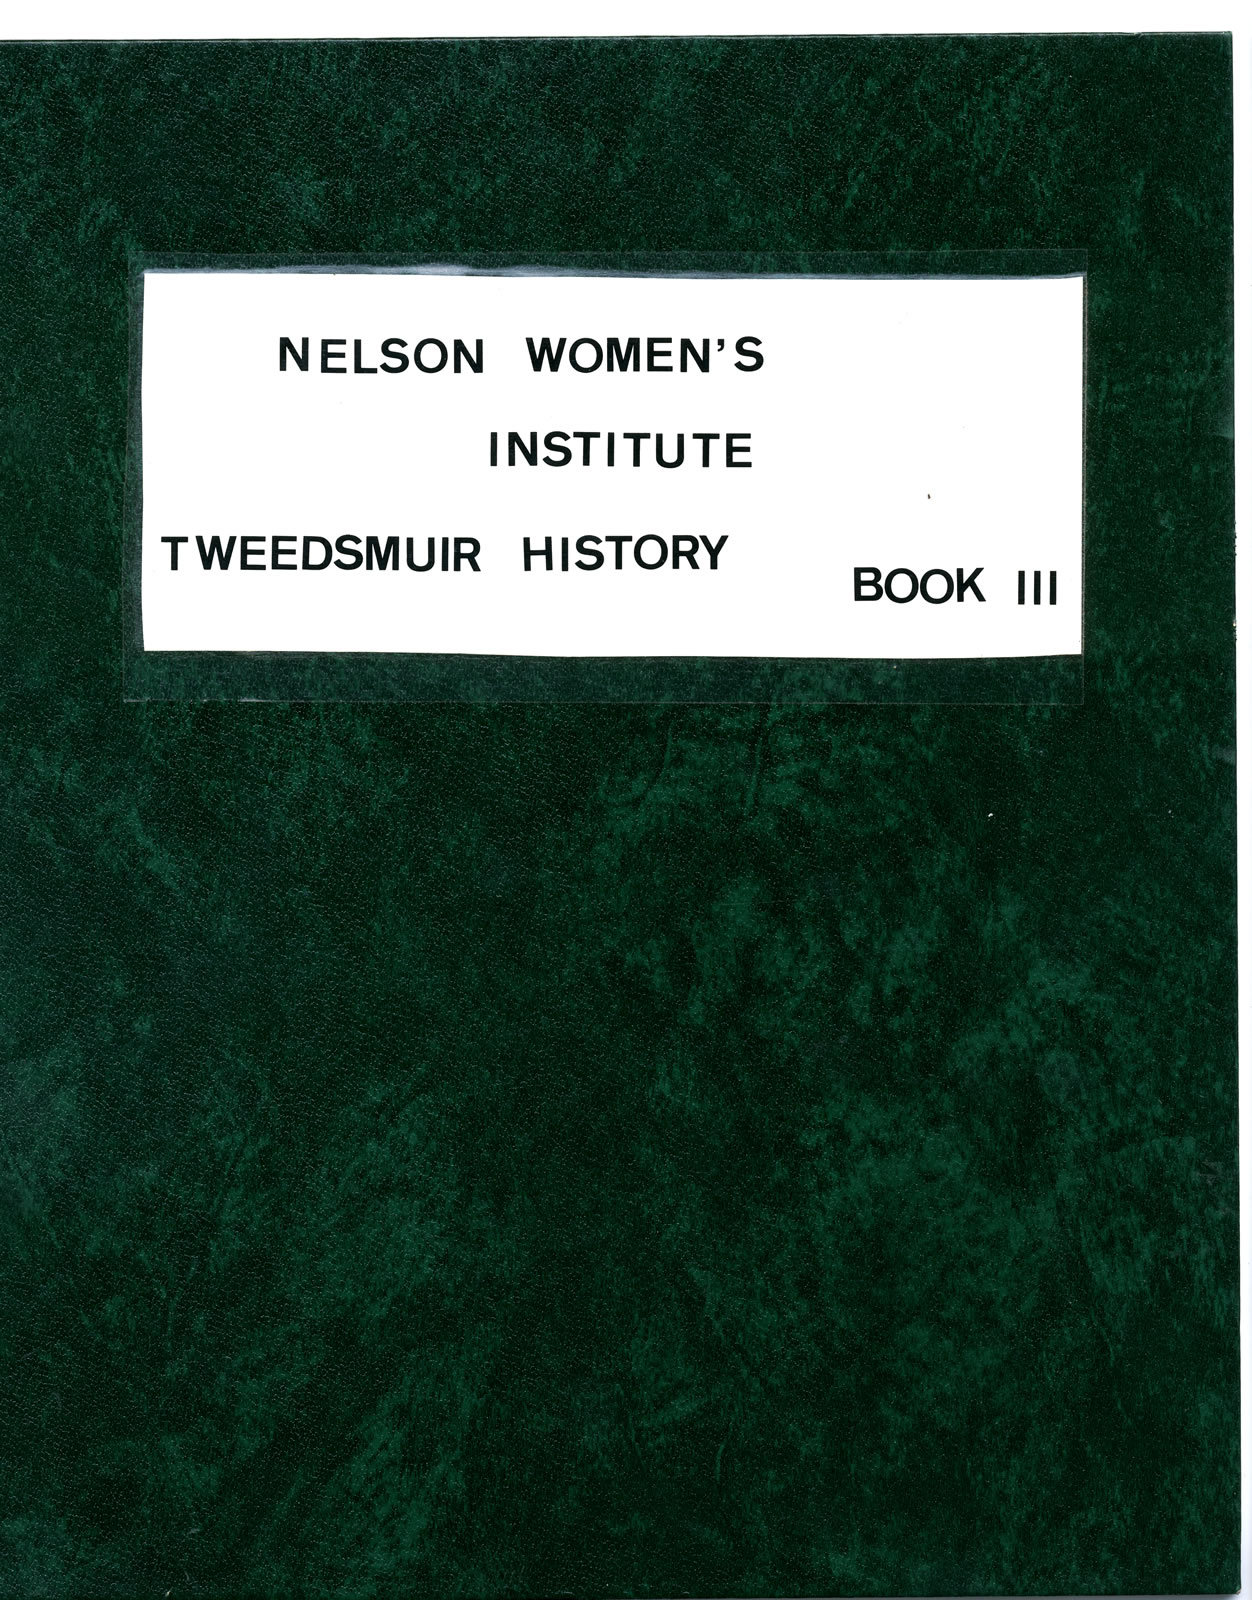 Nelson Women's Institute Tweedsmuir History, Book III (of 3 Books, currently available on OurOntario.ca)